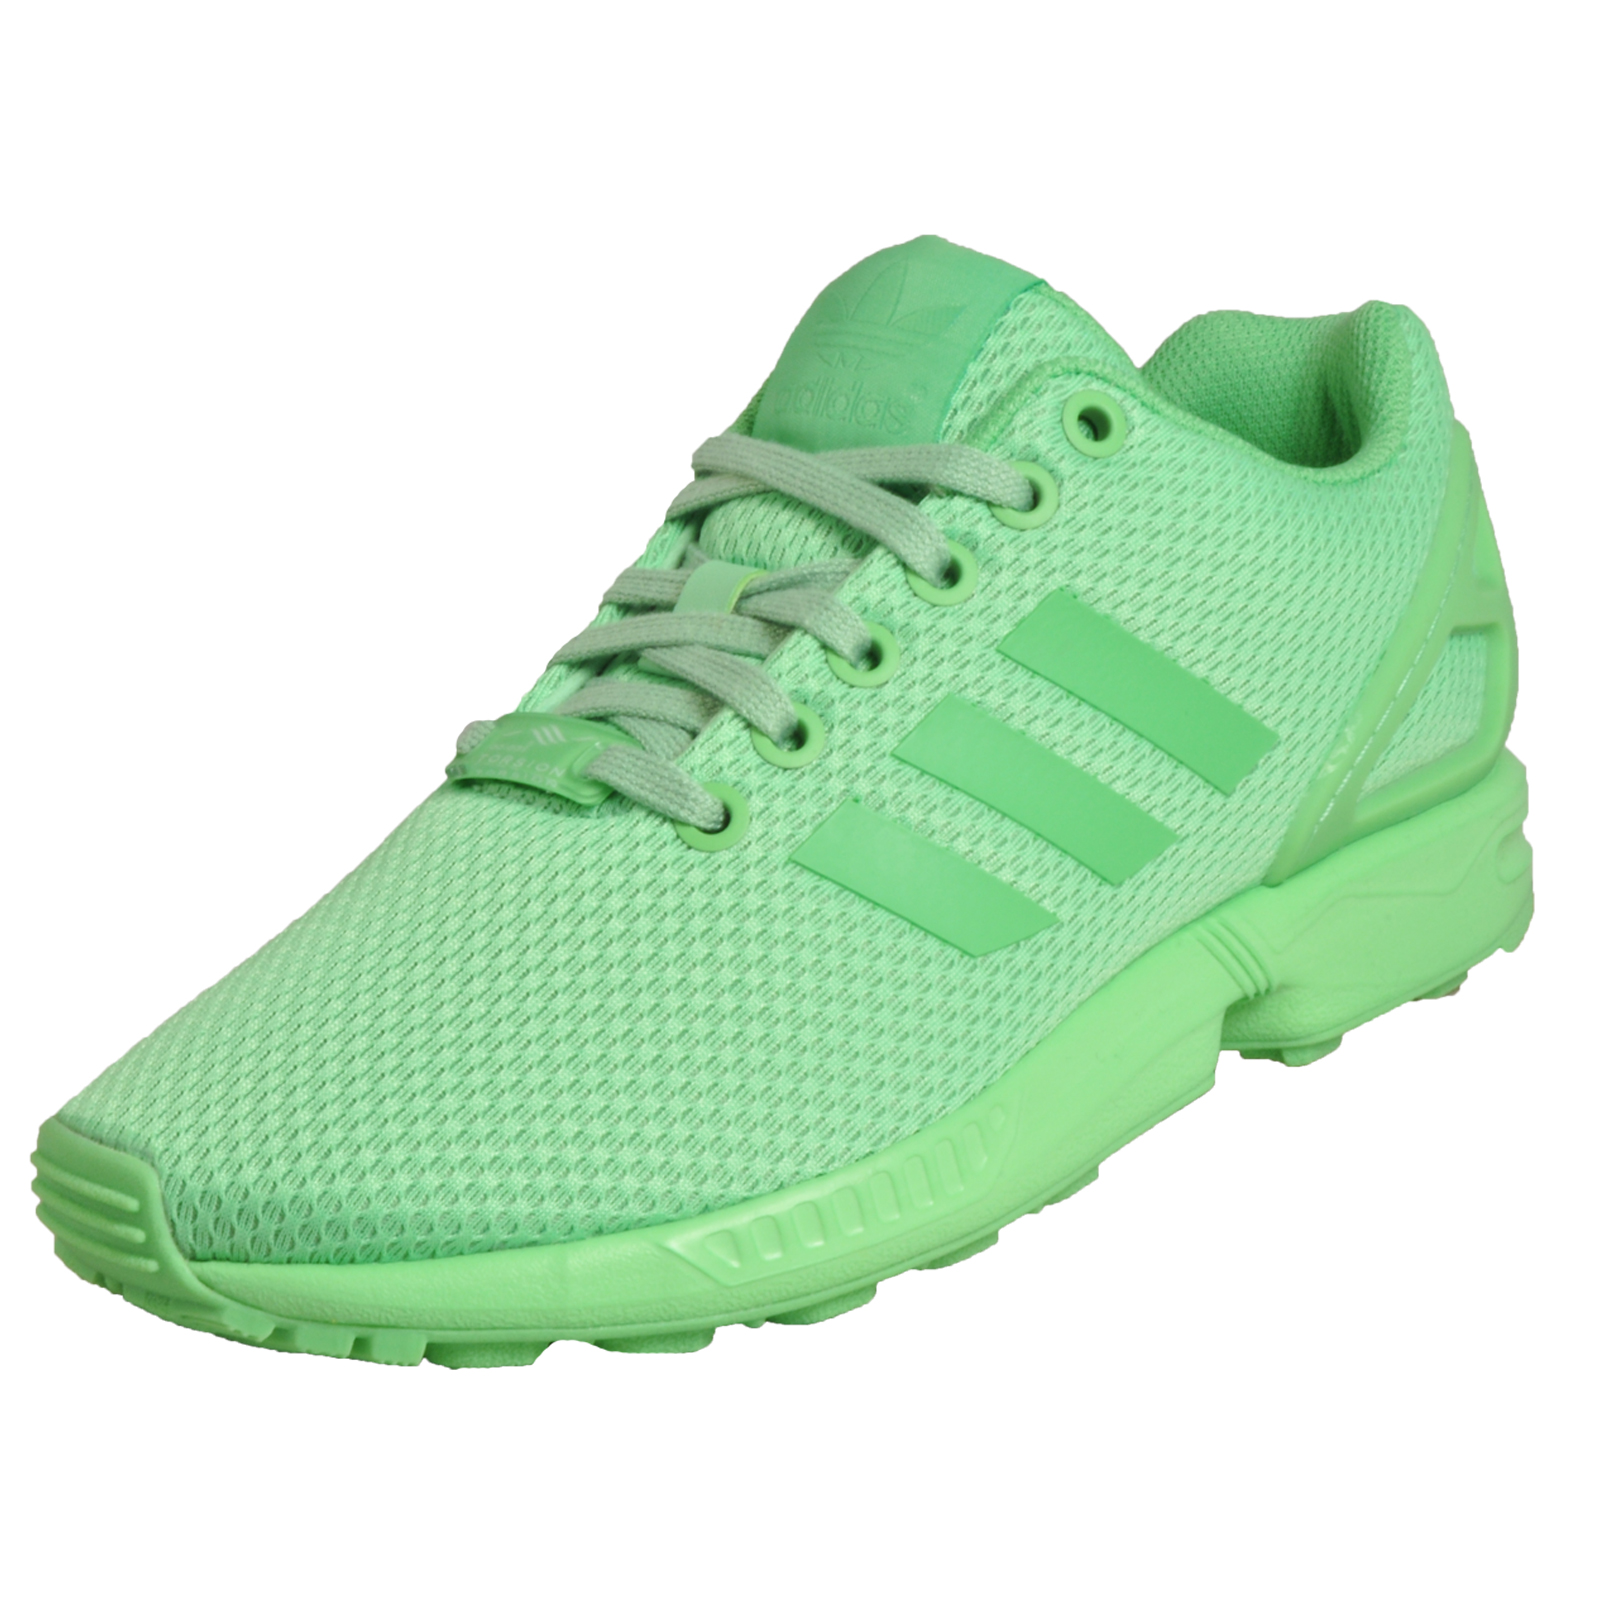 a660140381edb Details about Adidas Originals ZX Flux Women s Classic Casual Gym Fitness  Trainers Green